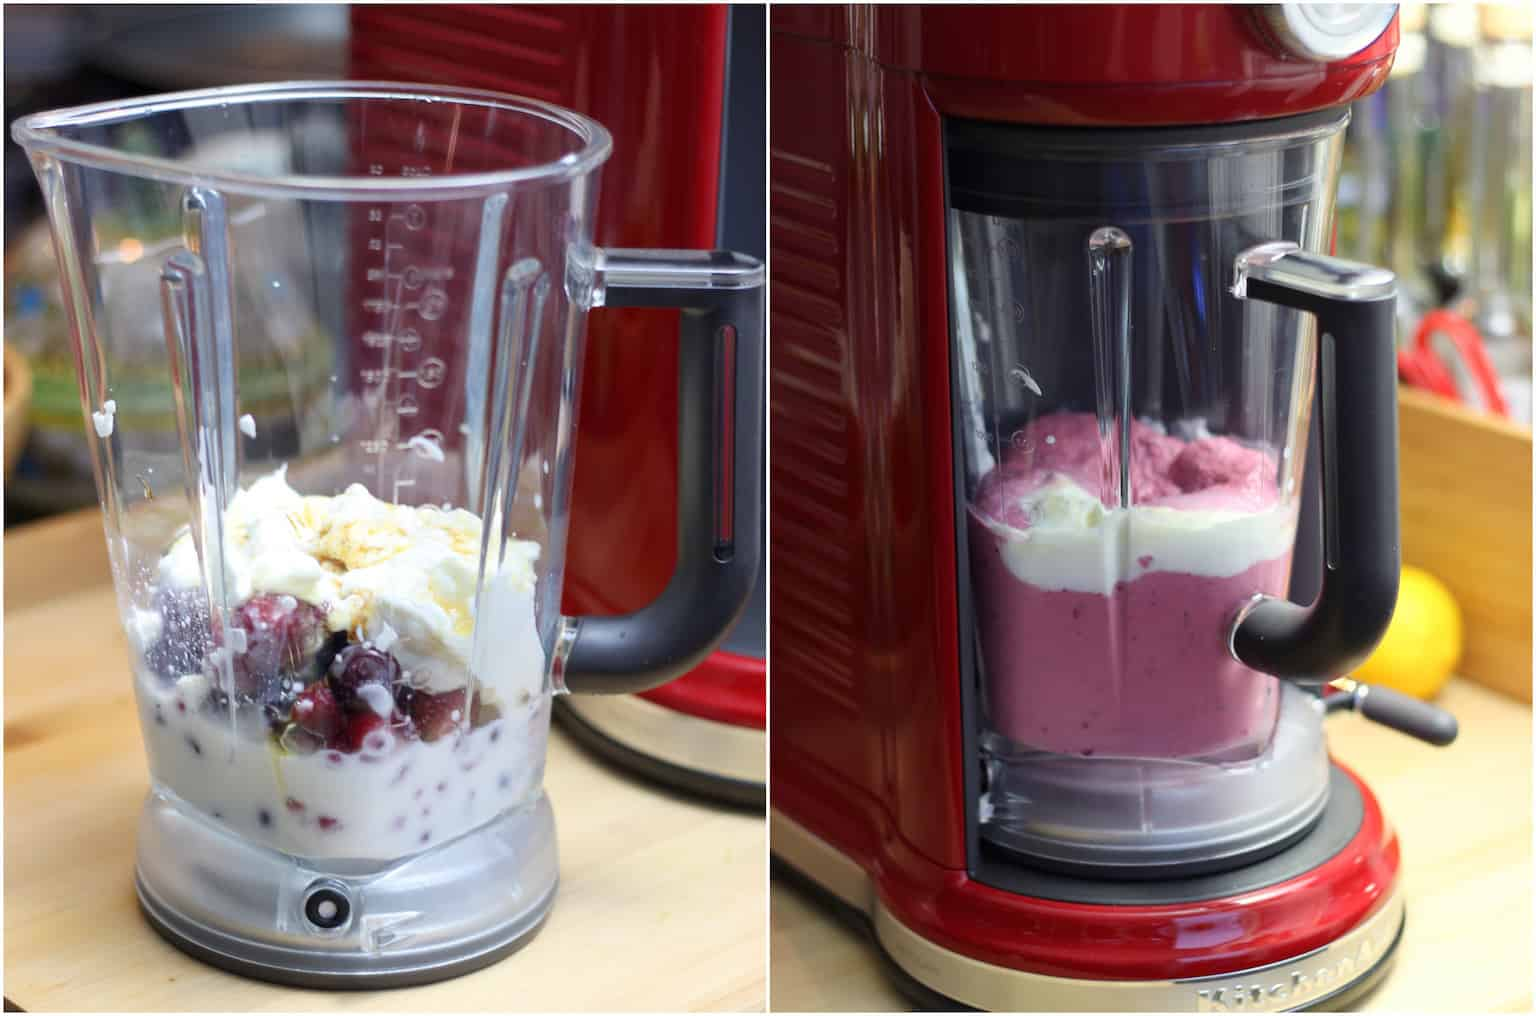 Review Van De Kitchenaid Magnetic Drive Blender